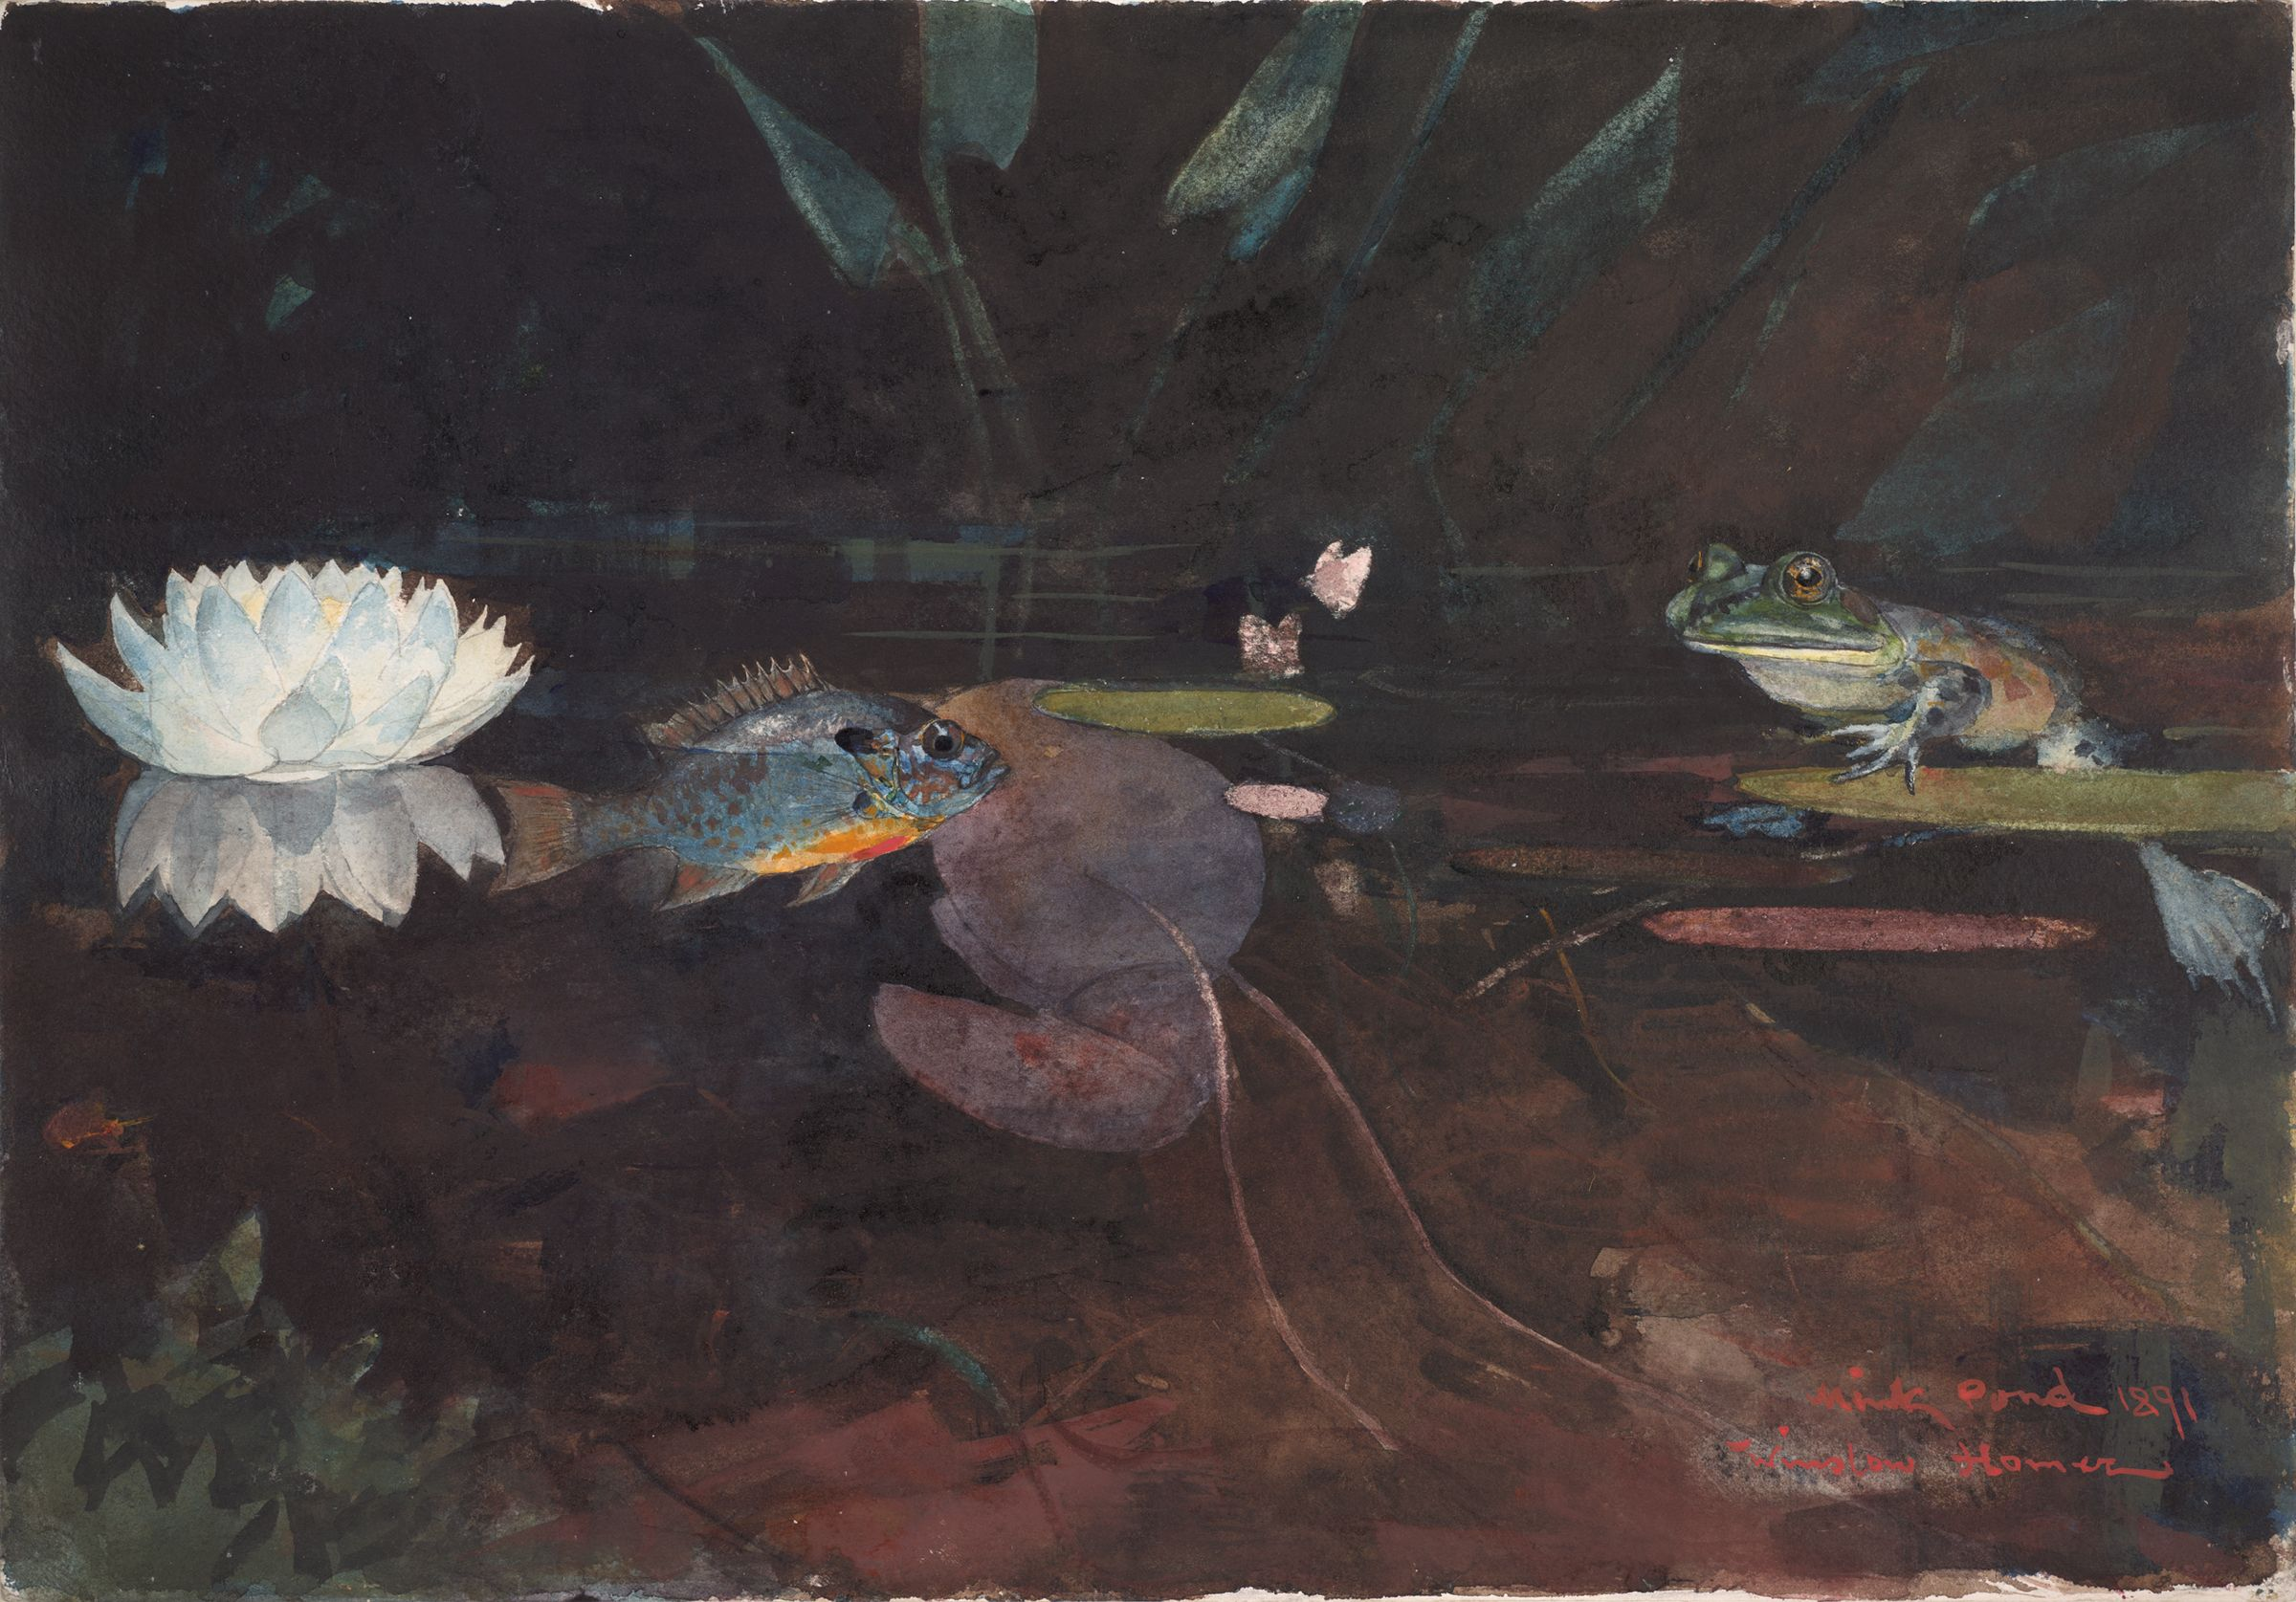 From The Harvard Art Museums Collections Mink Pond